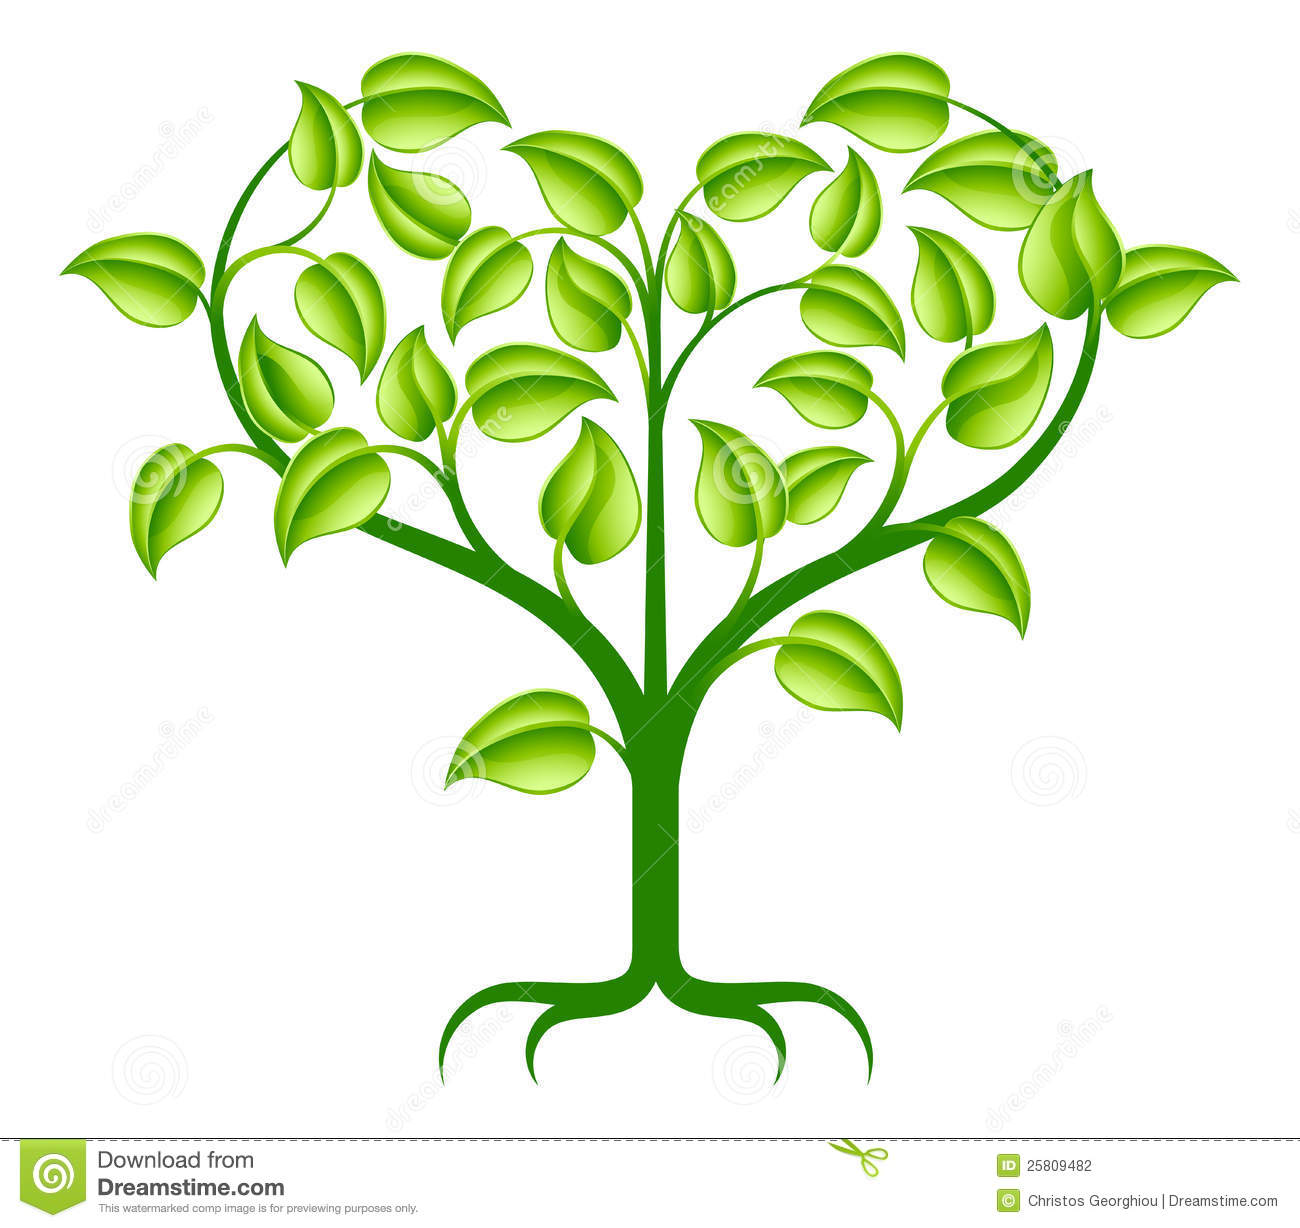 green abstract tree illustration with branches growing into a heart ...